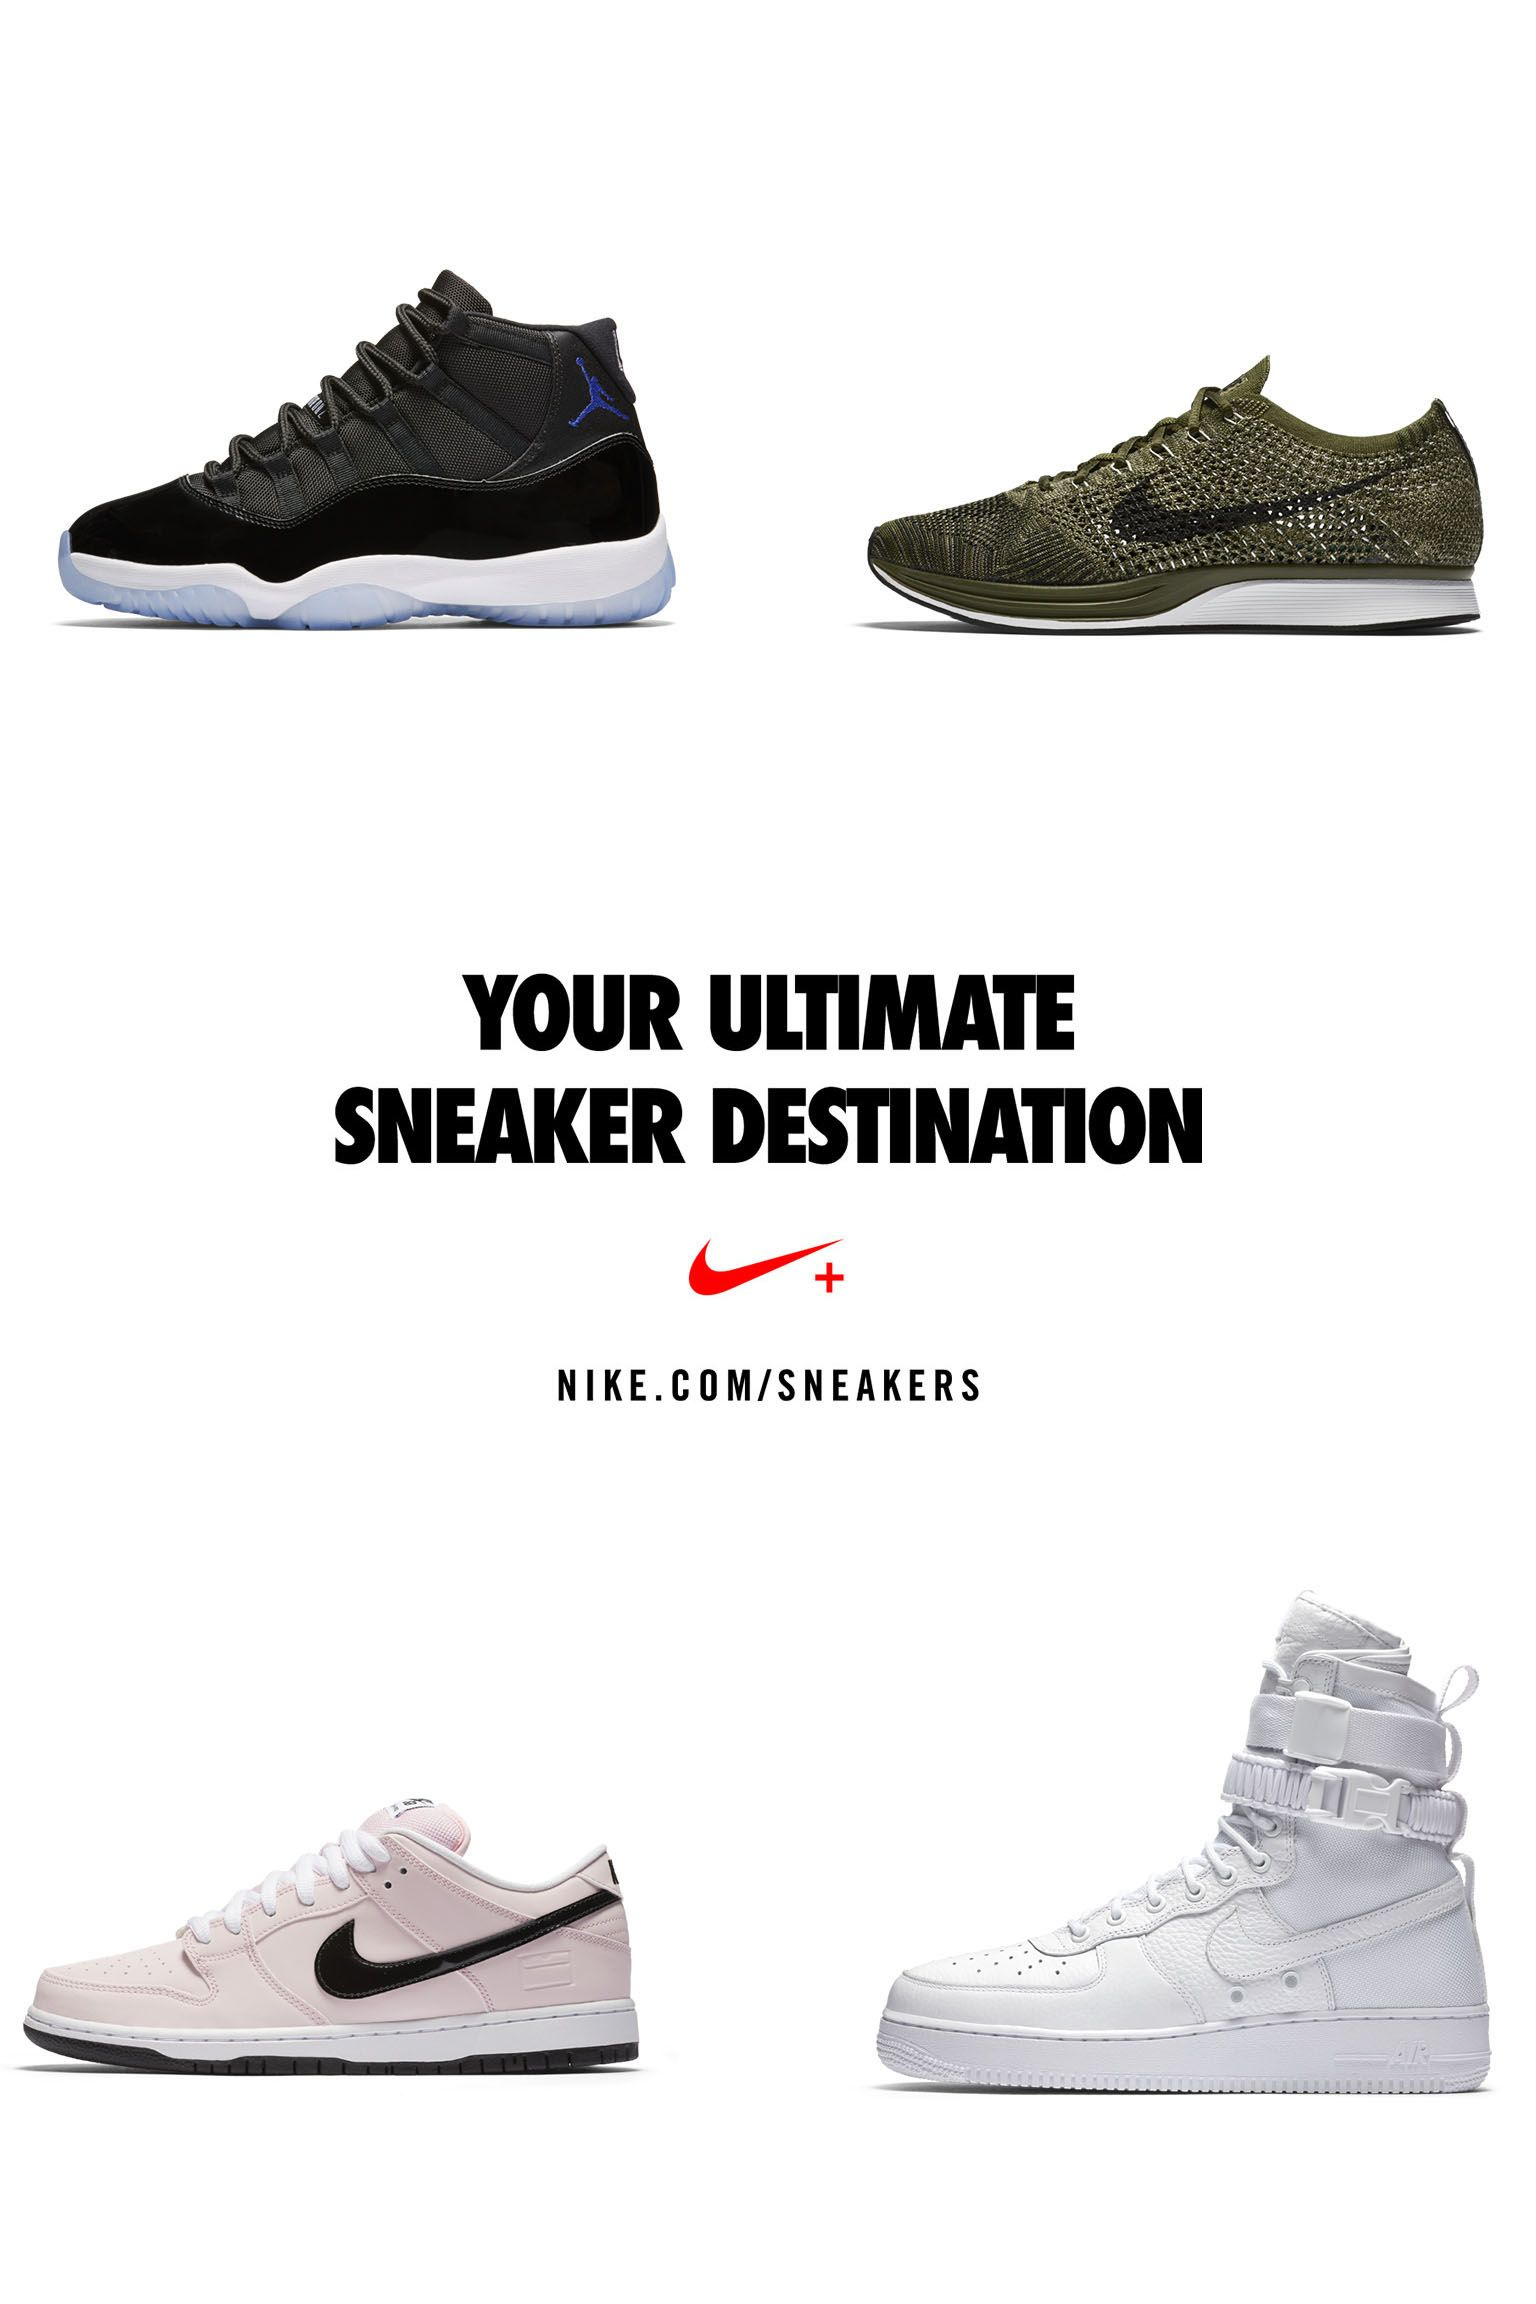 What is Nike Sneakers?